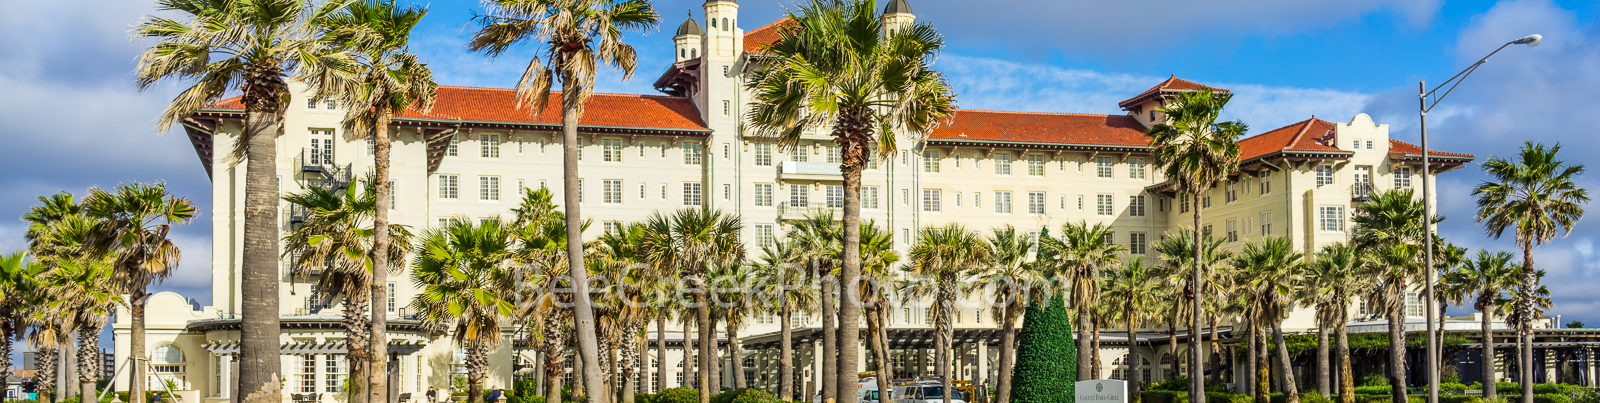 Hotel Galvez Galveston Pano - This is the historic hotel Galvez which survived the 1900 hurricane.  This hotel was built in 1911...